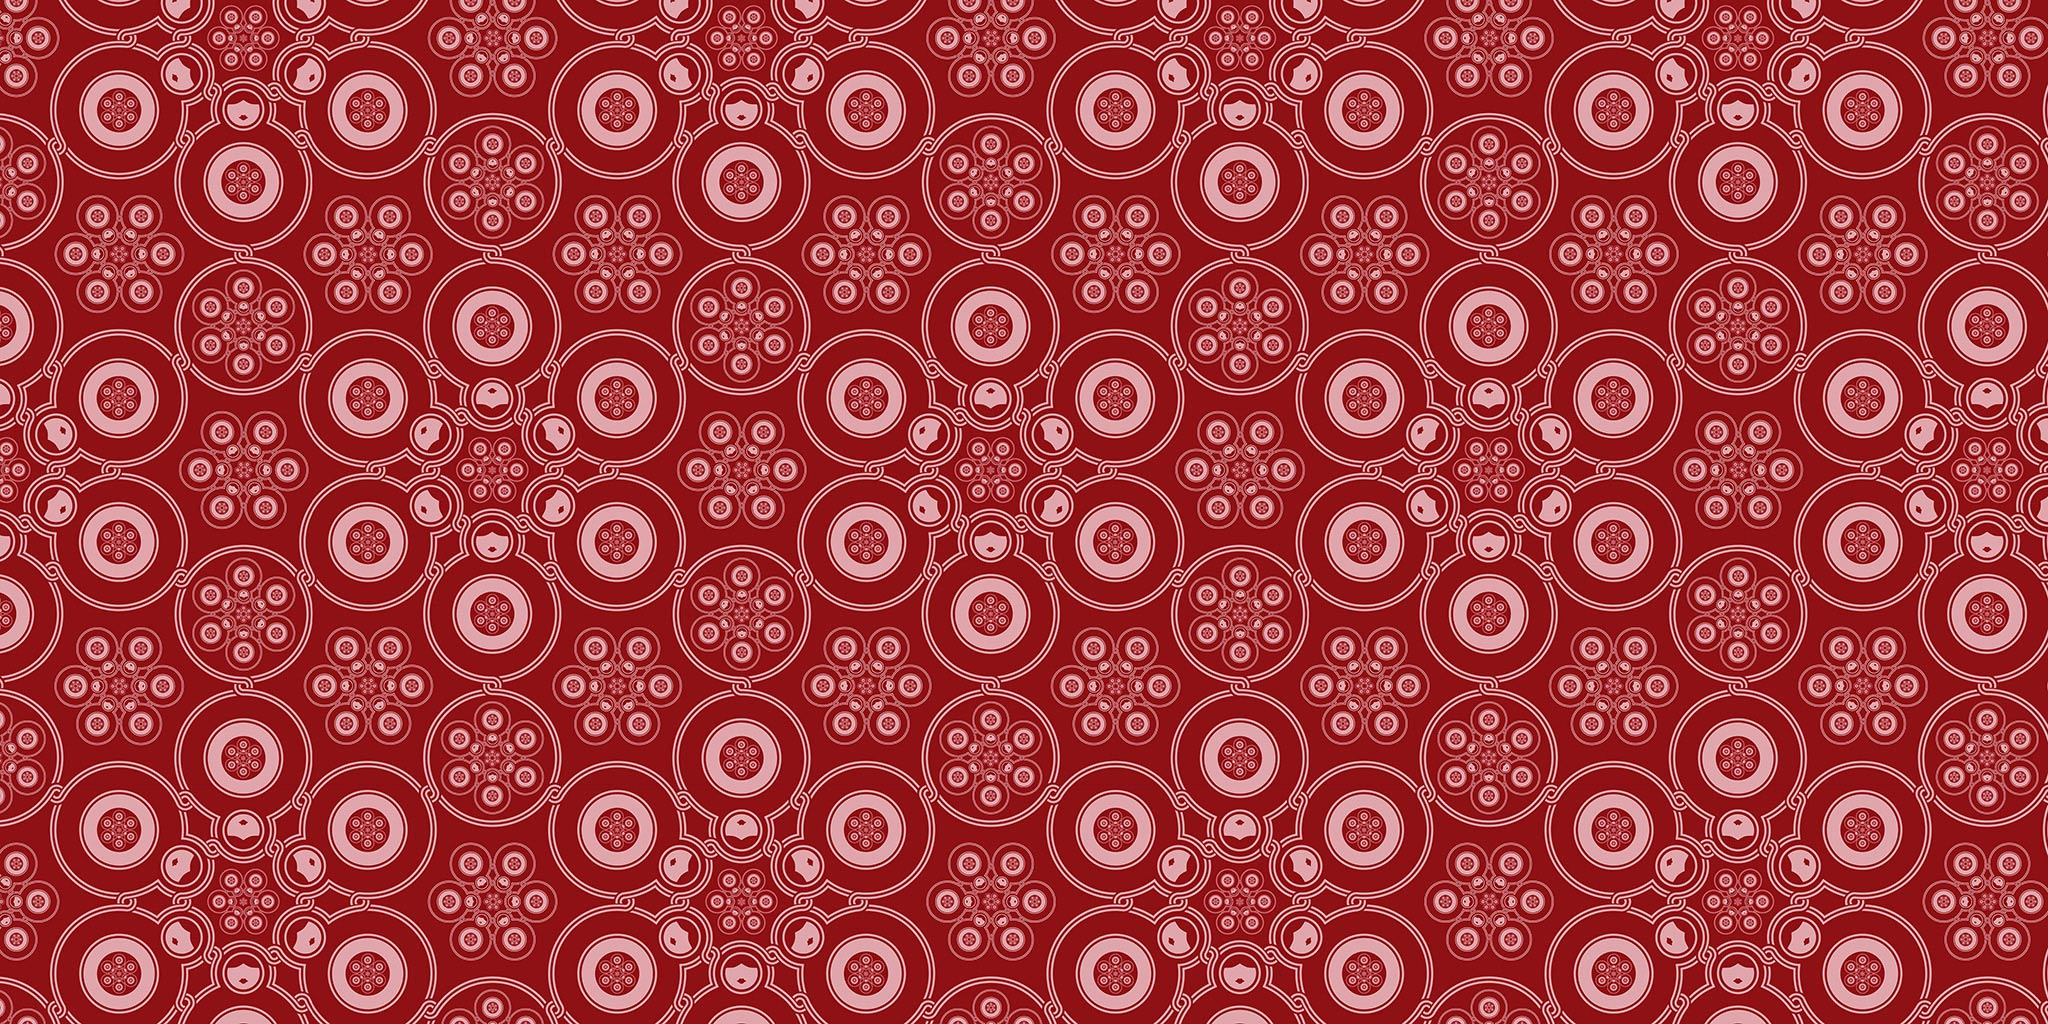 Wallpaper edition for The Matryoshka Dolls, from The Fractal Architectures series